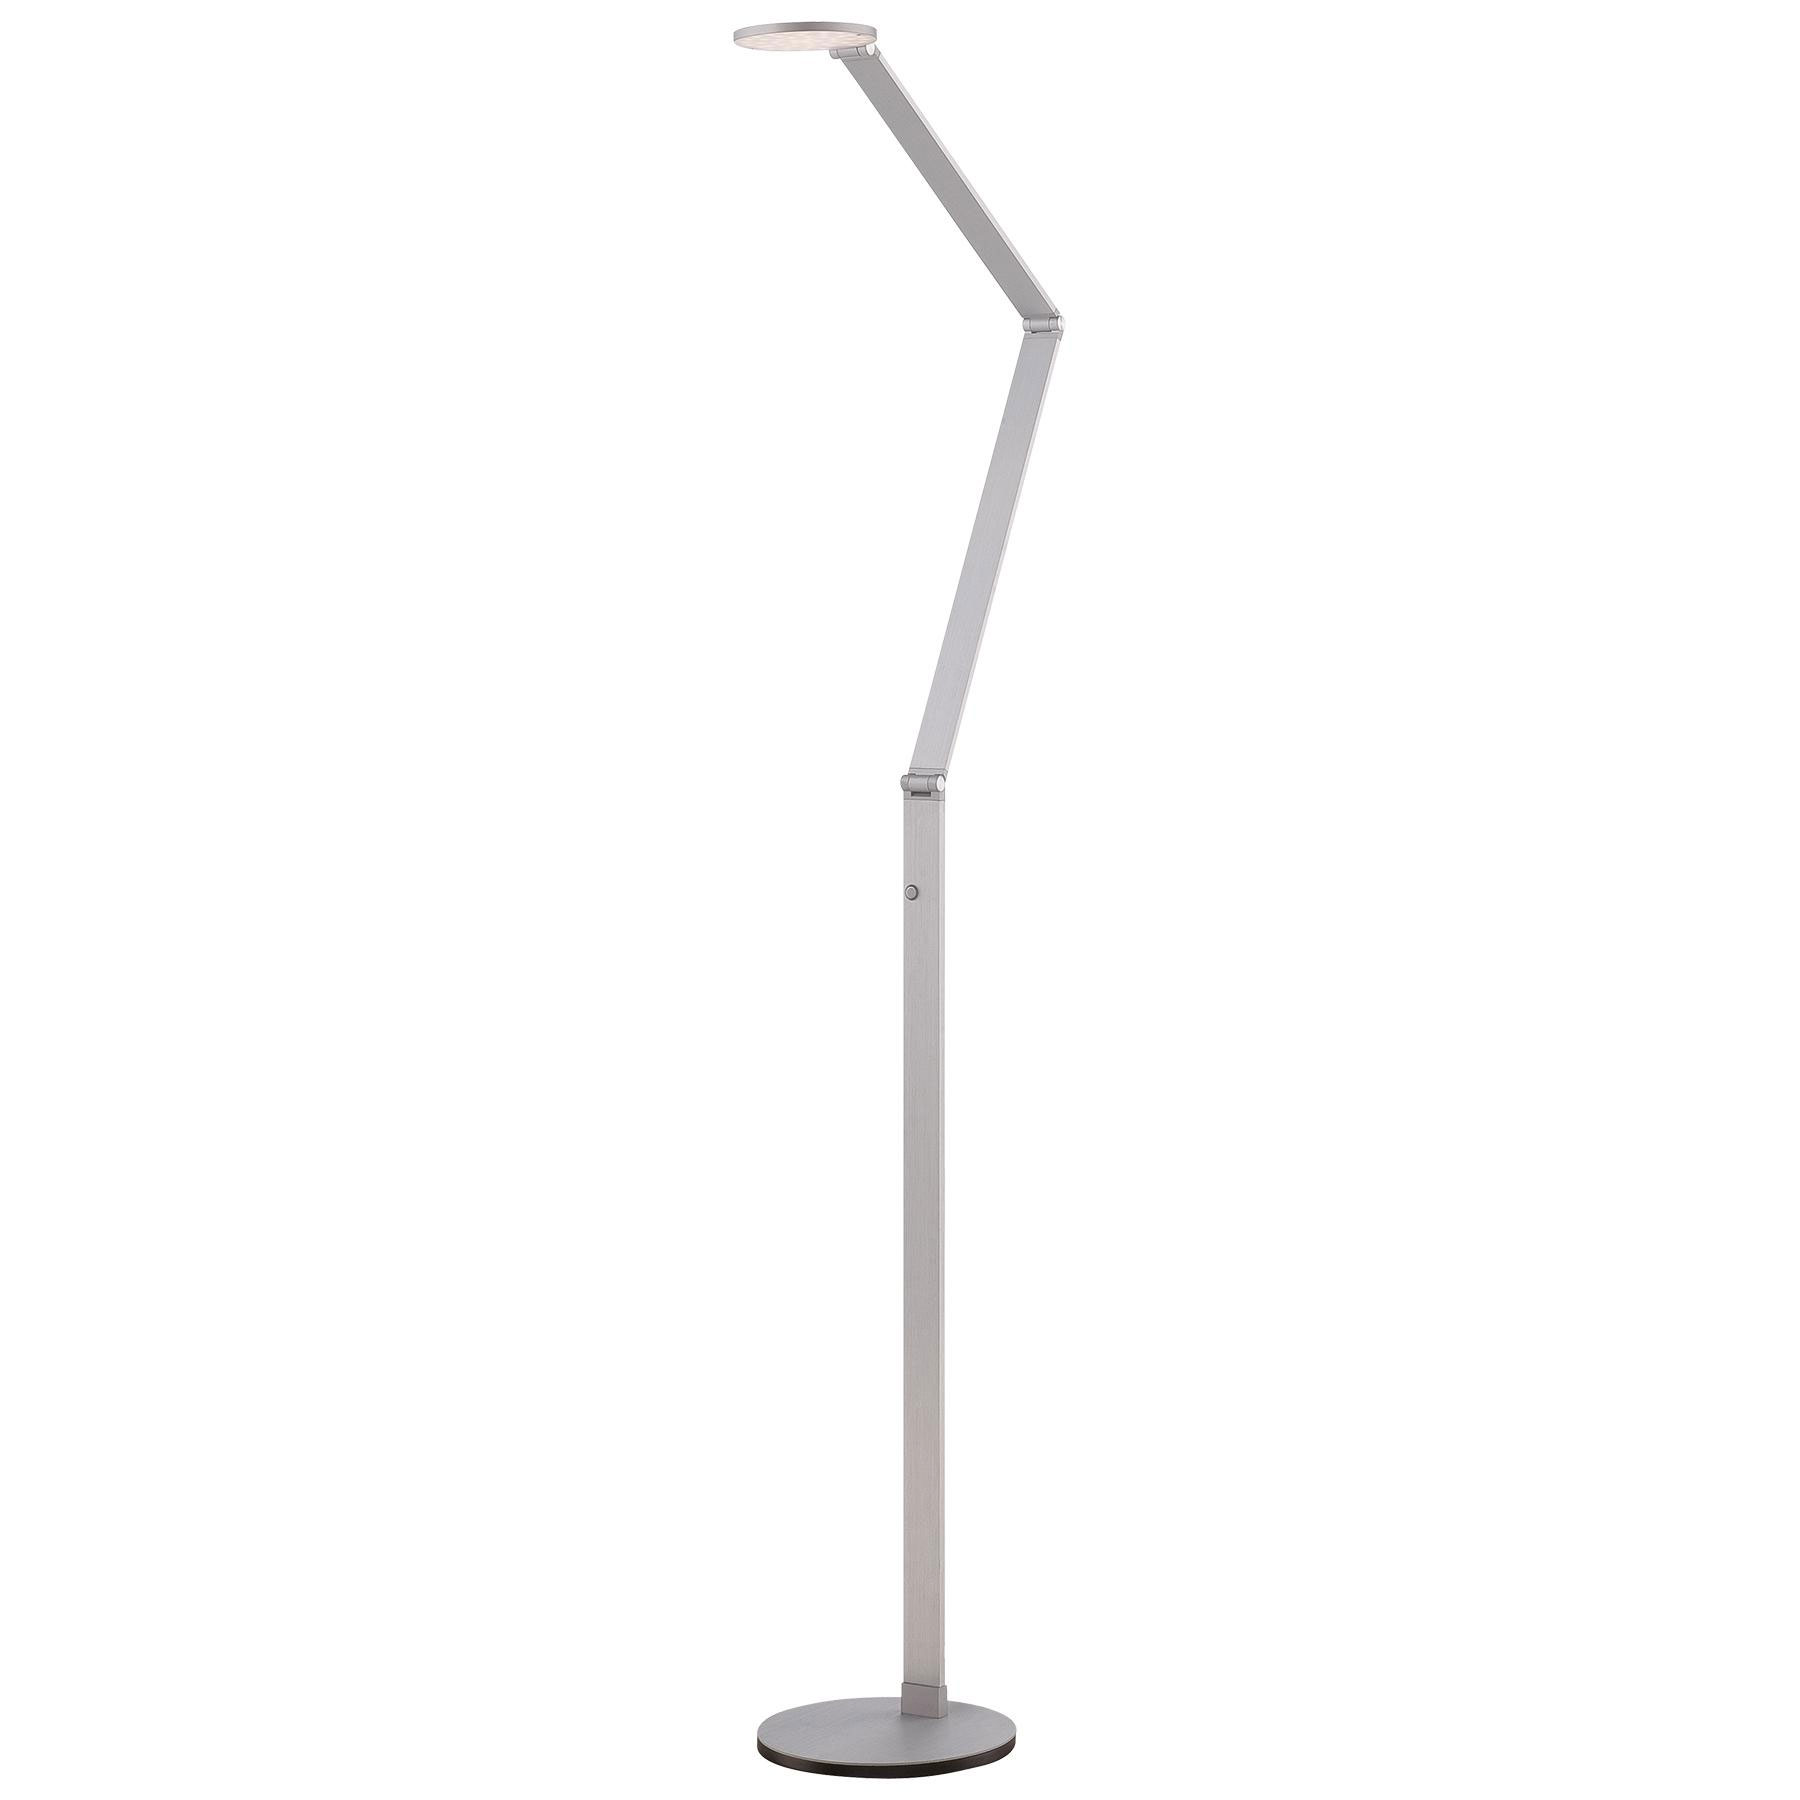 lando inspiration livingroom galleries kichler reading floor lamps lighting cantilever